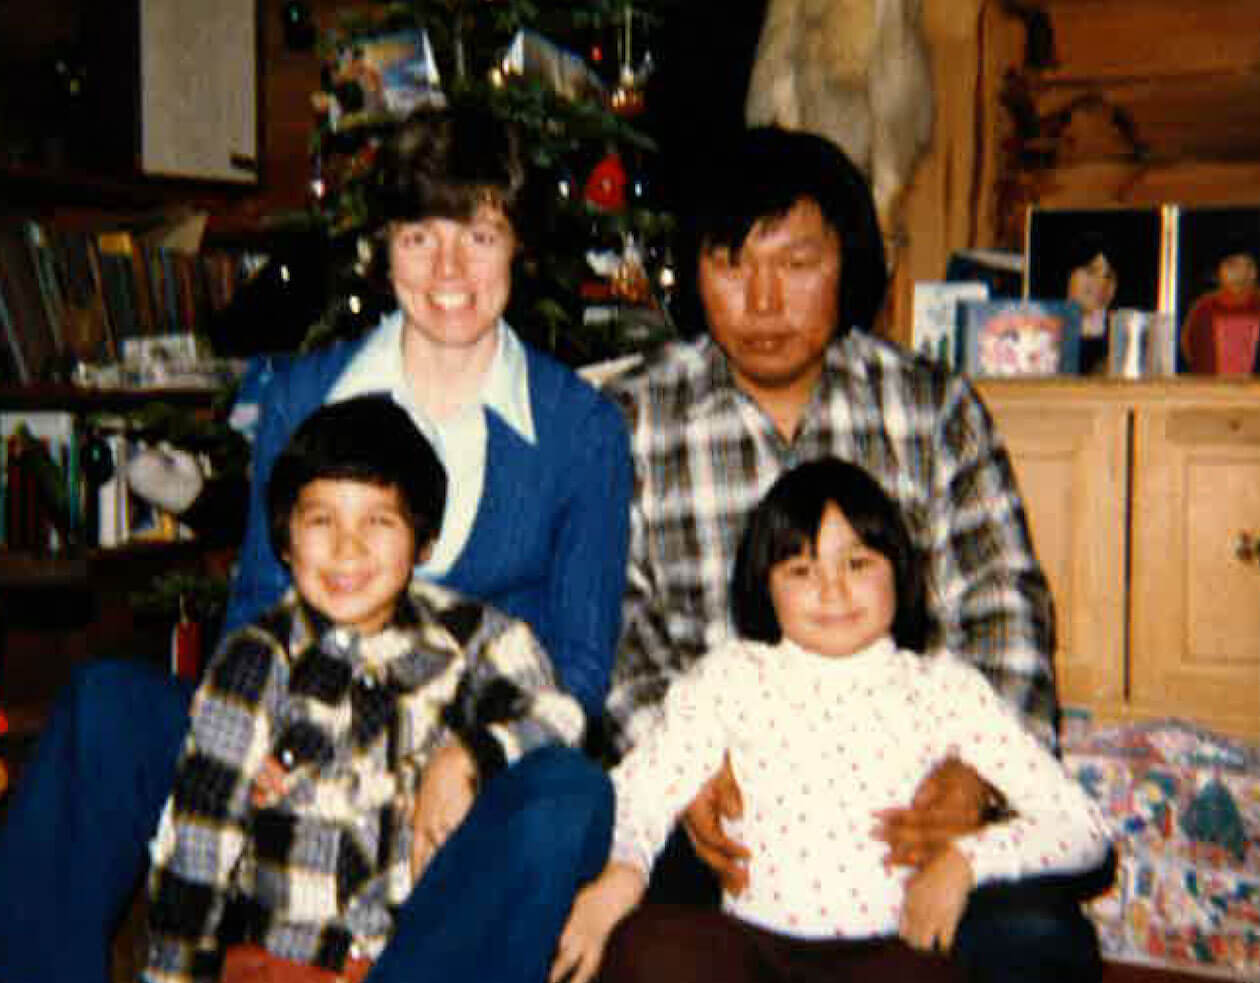 Obed's family in Nain in 1980